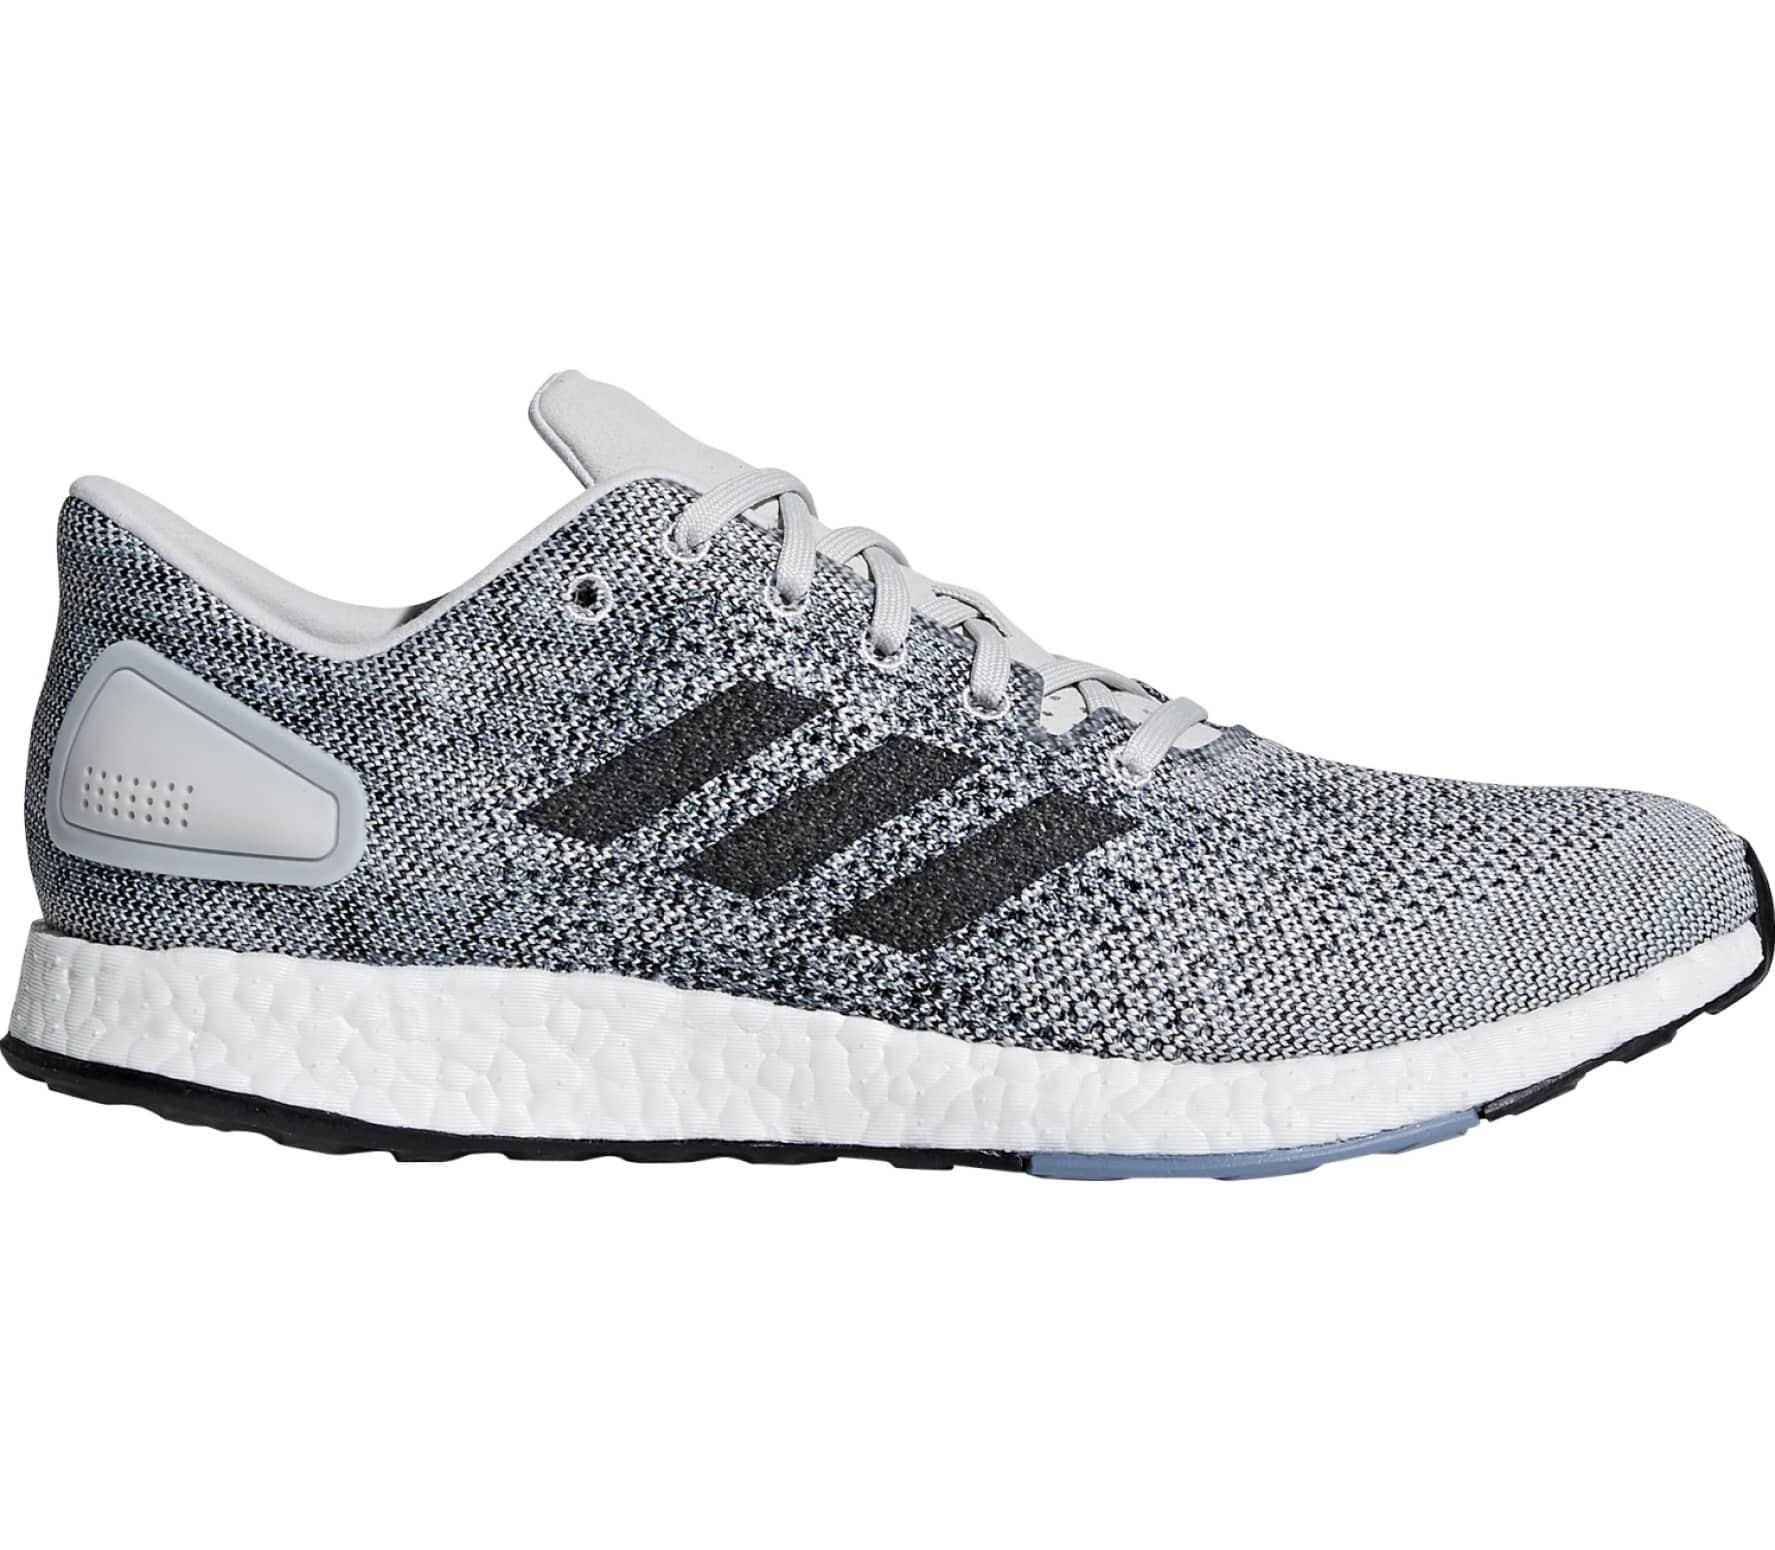 18afde94b Adidas - Pure Boost DPR Special Color men s running shoes (light grey)